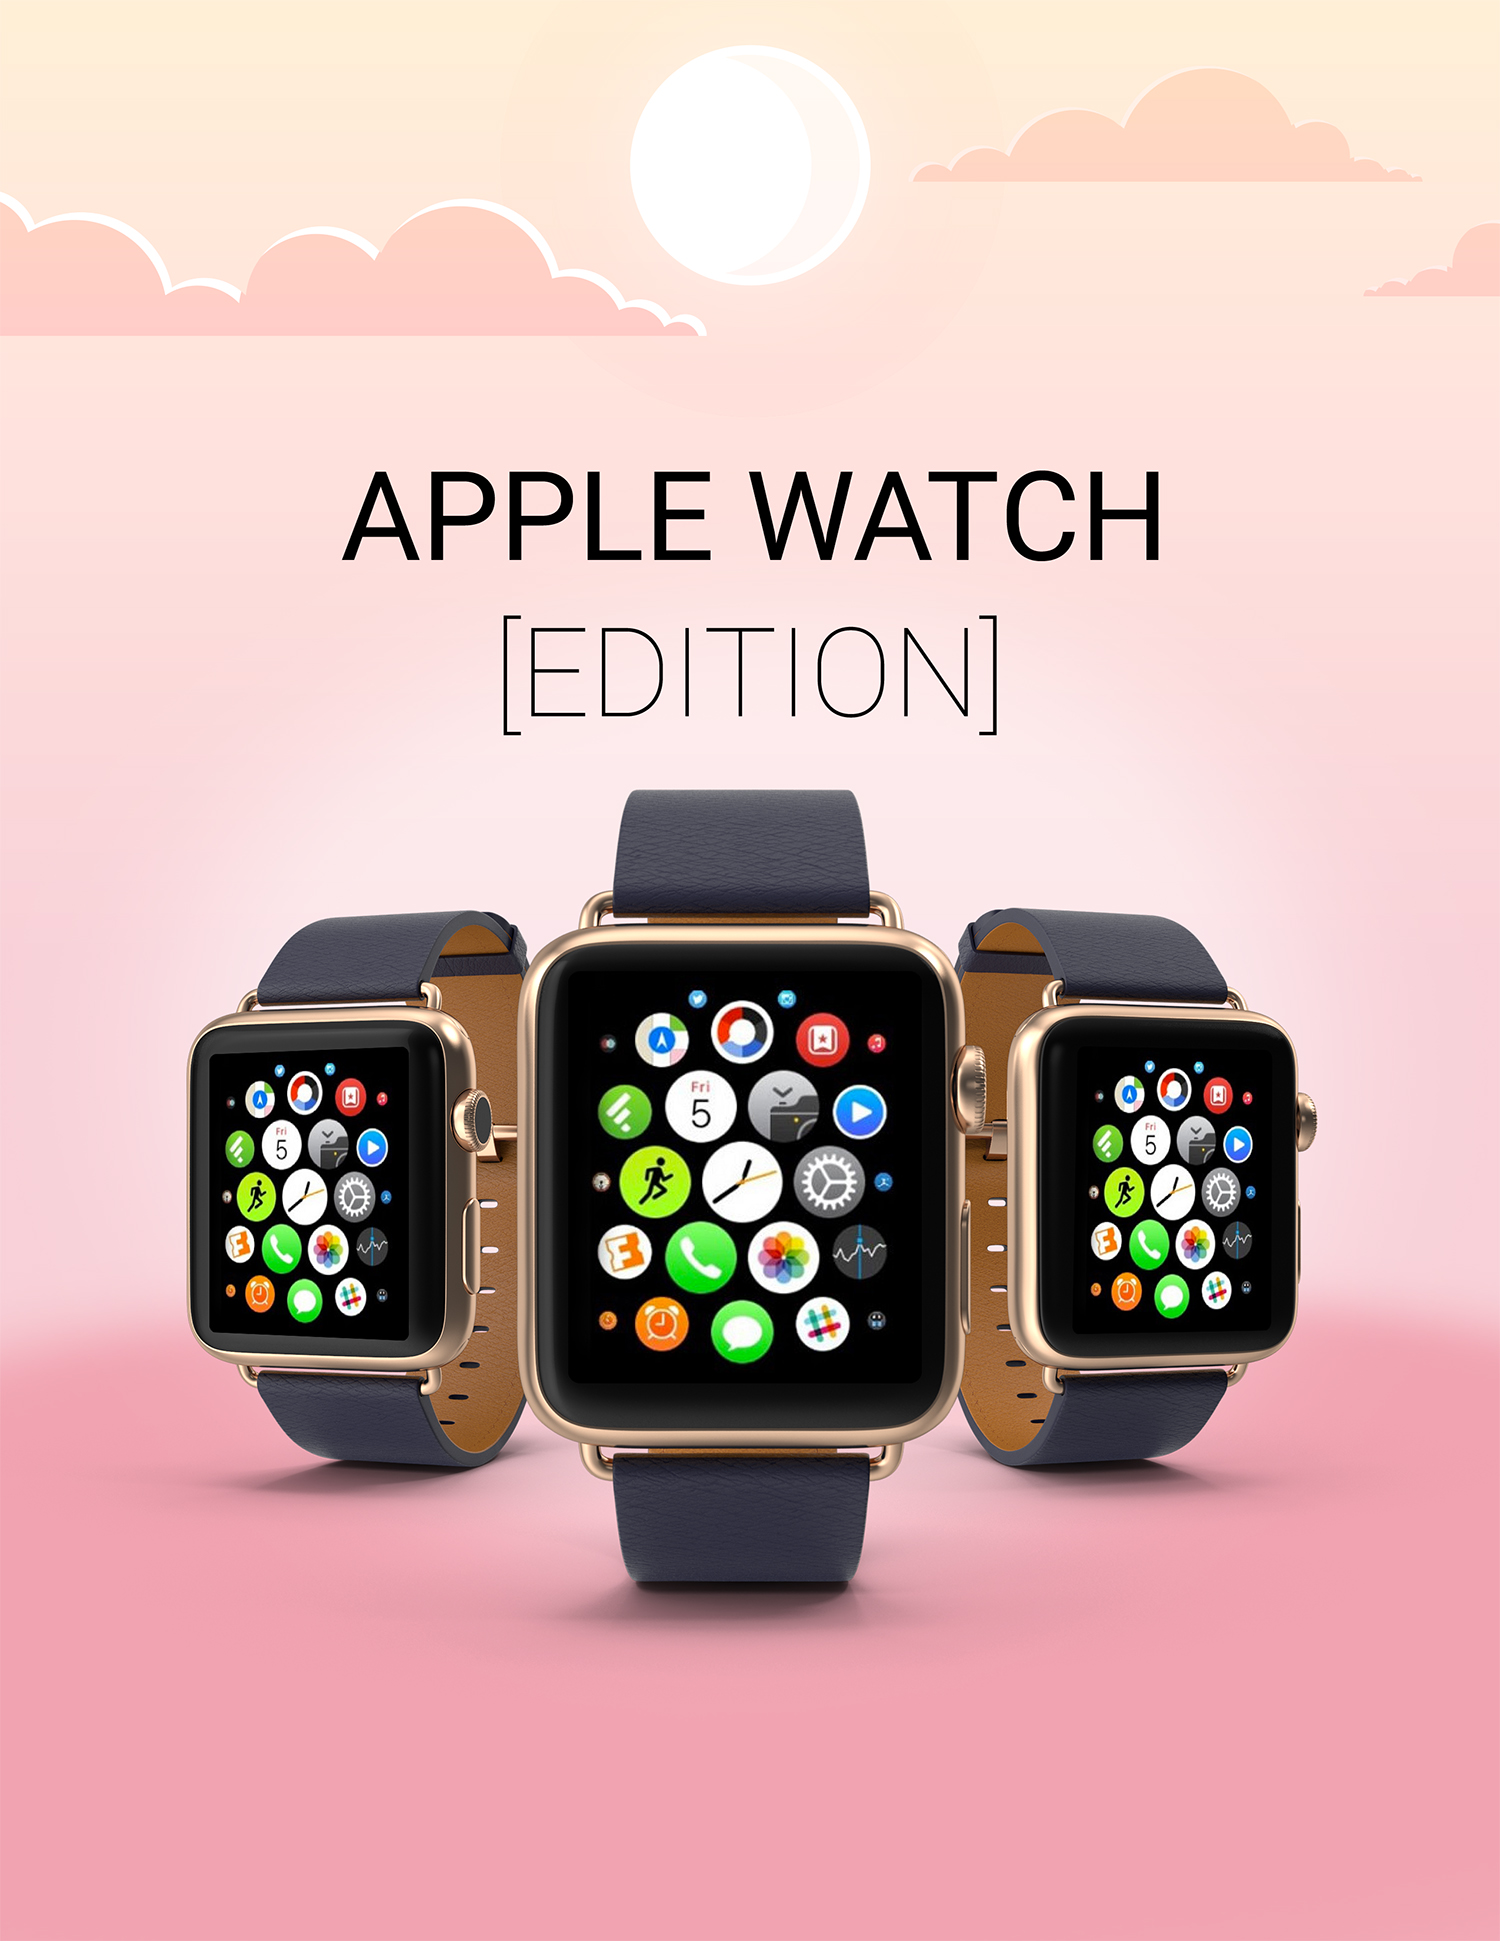 Apple Watch Edition Mockup